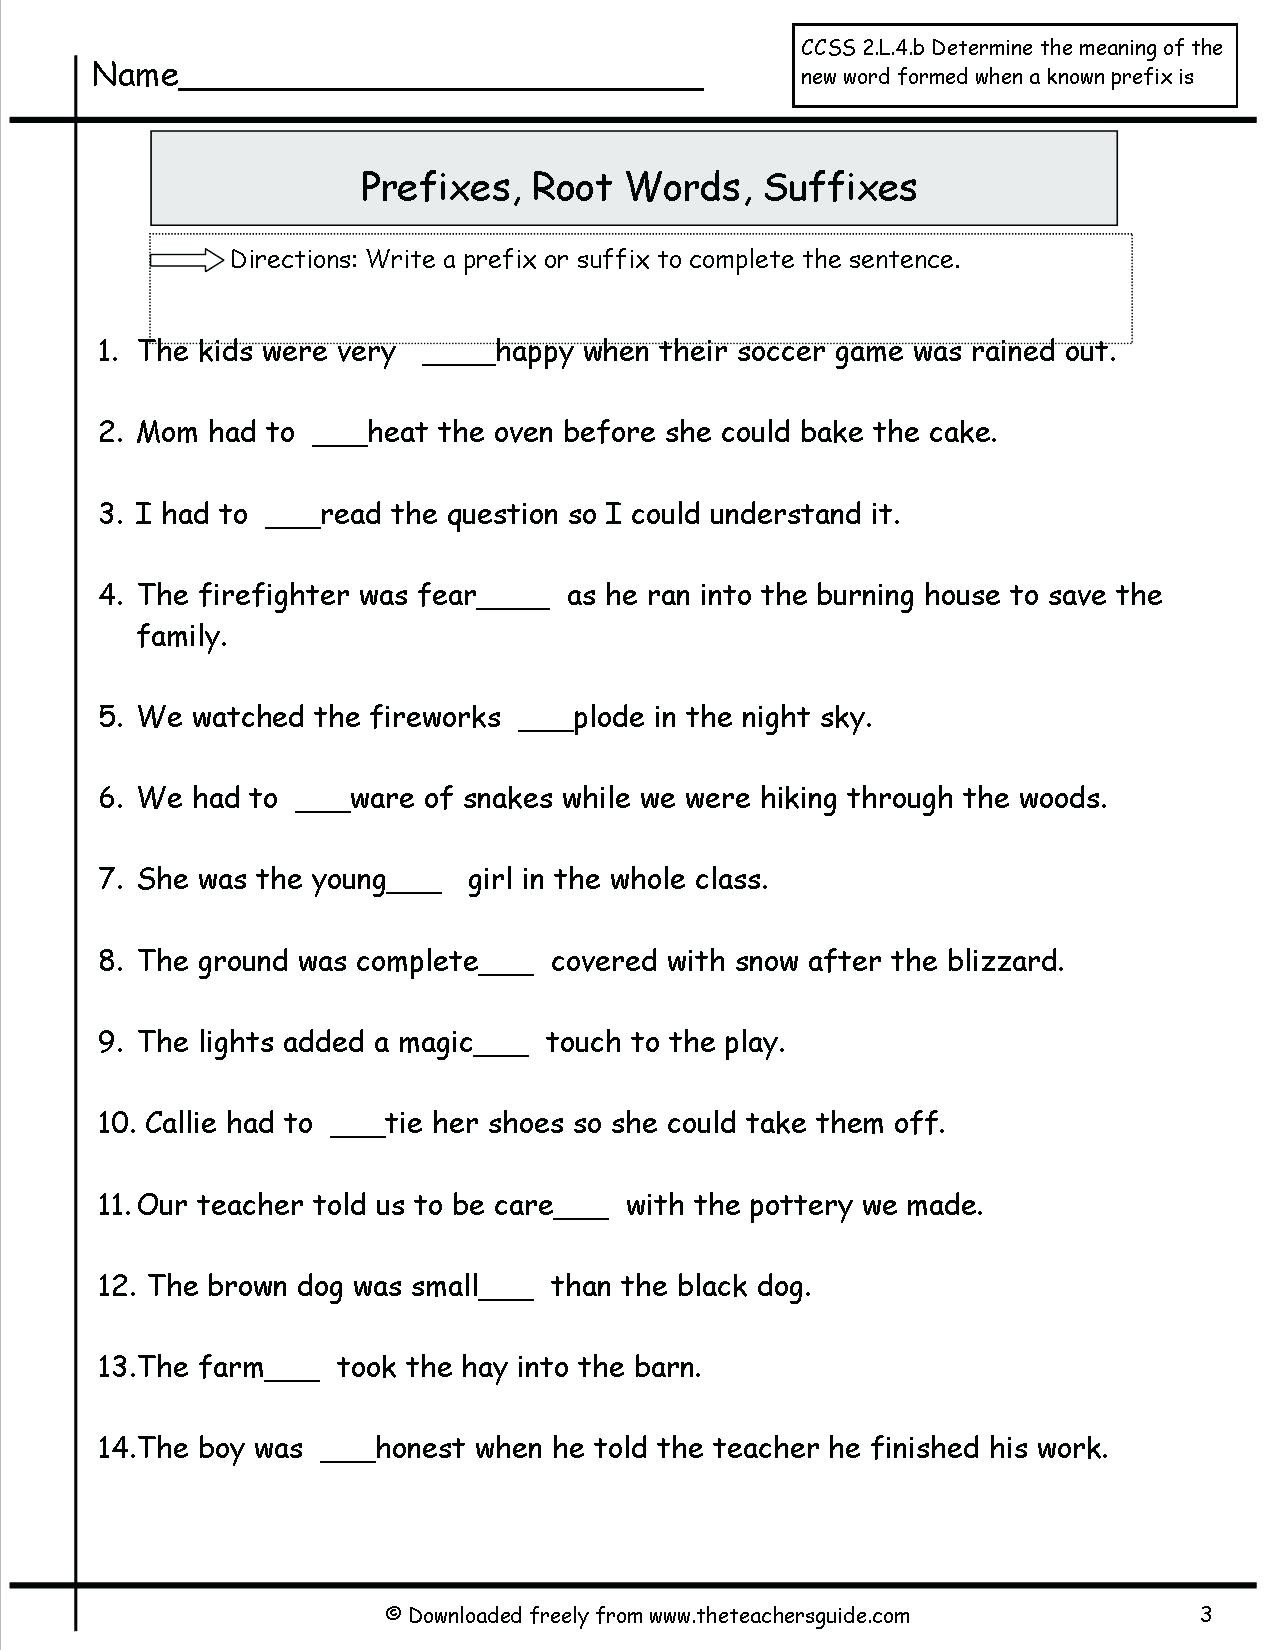 Prefixes Worksheets 3rd Grade 3rd Grade Prefixes and Suffixes Worksheets Root Words